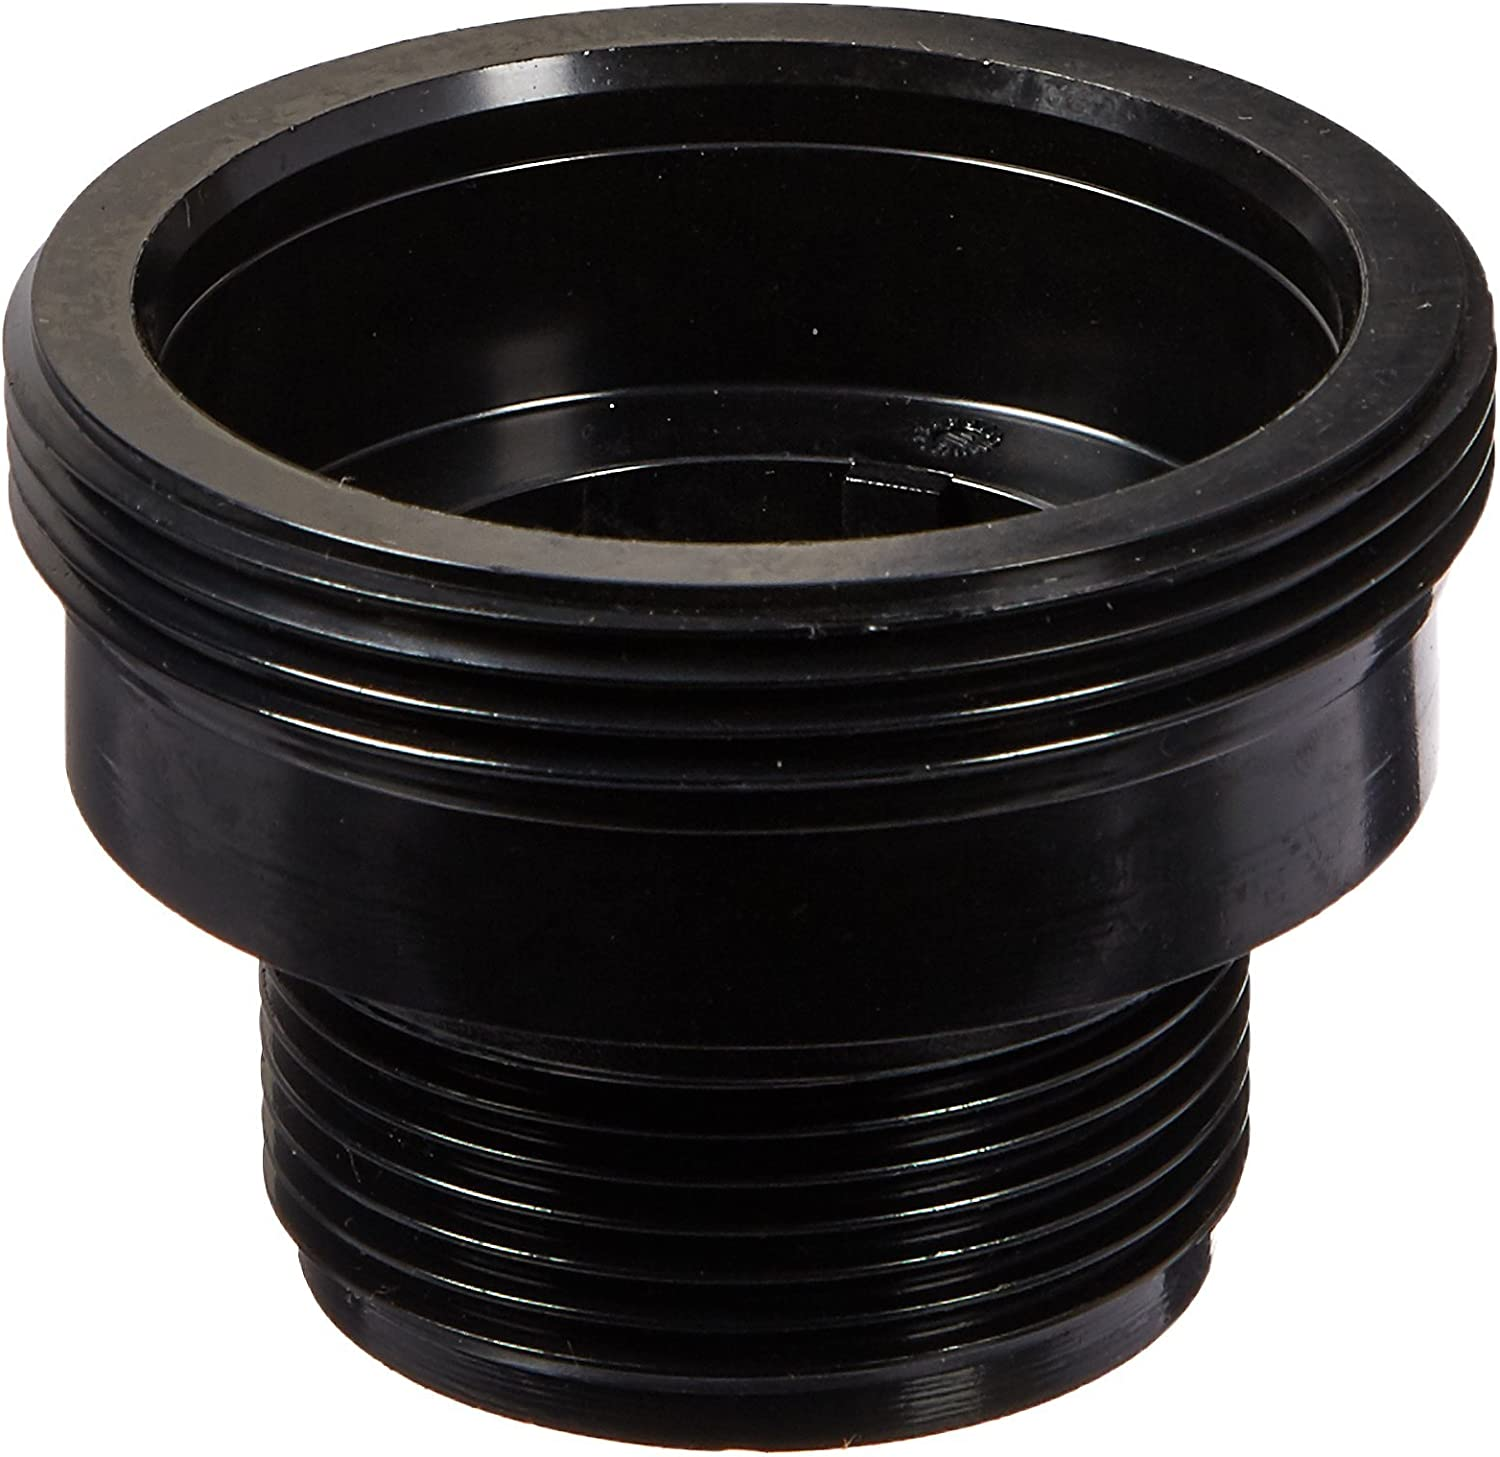 Brand Cheap Sale Venue Pentair 190141 2-Inch Bulkhead Replacement Spa D.E. Fil excellence and Pool